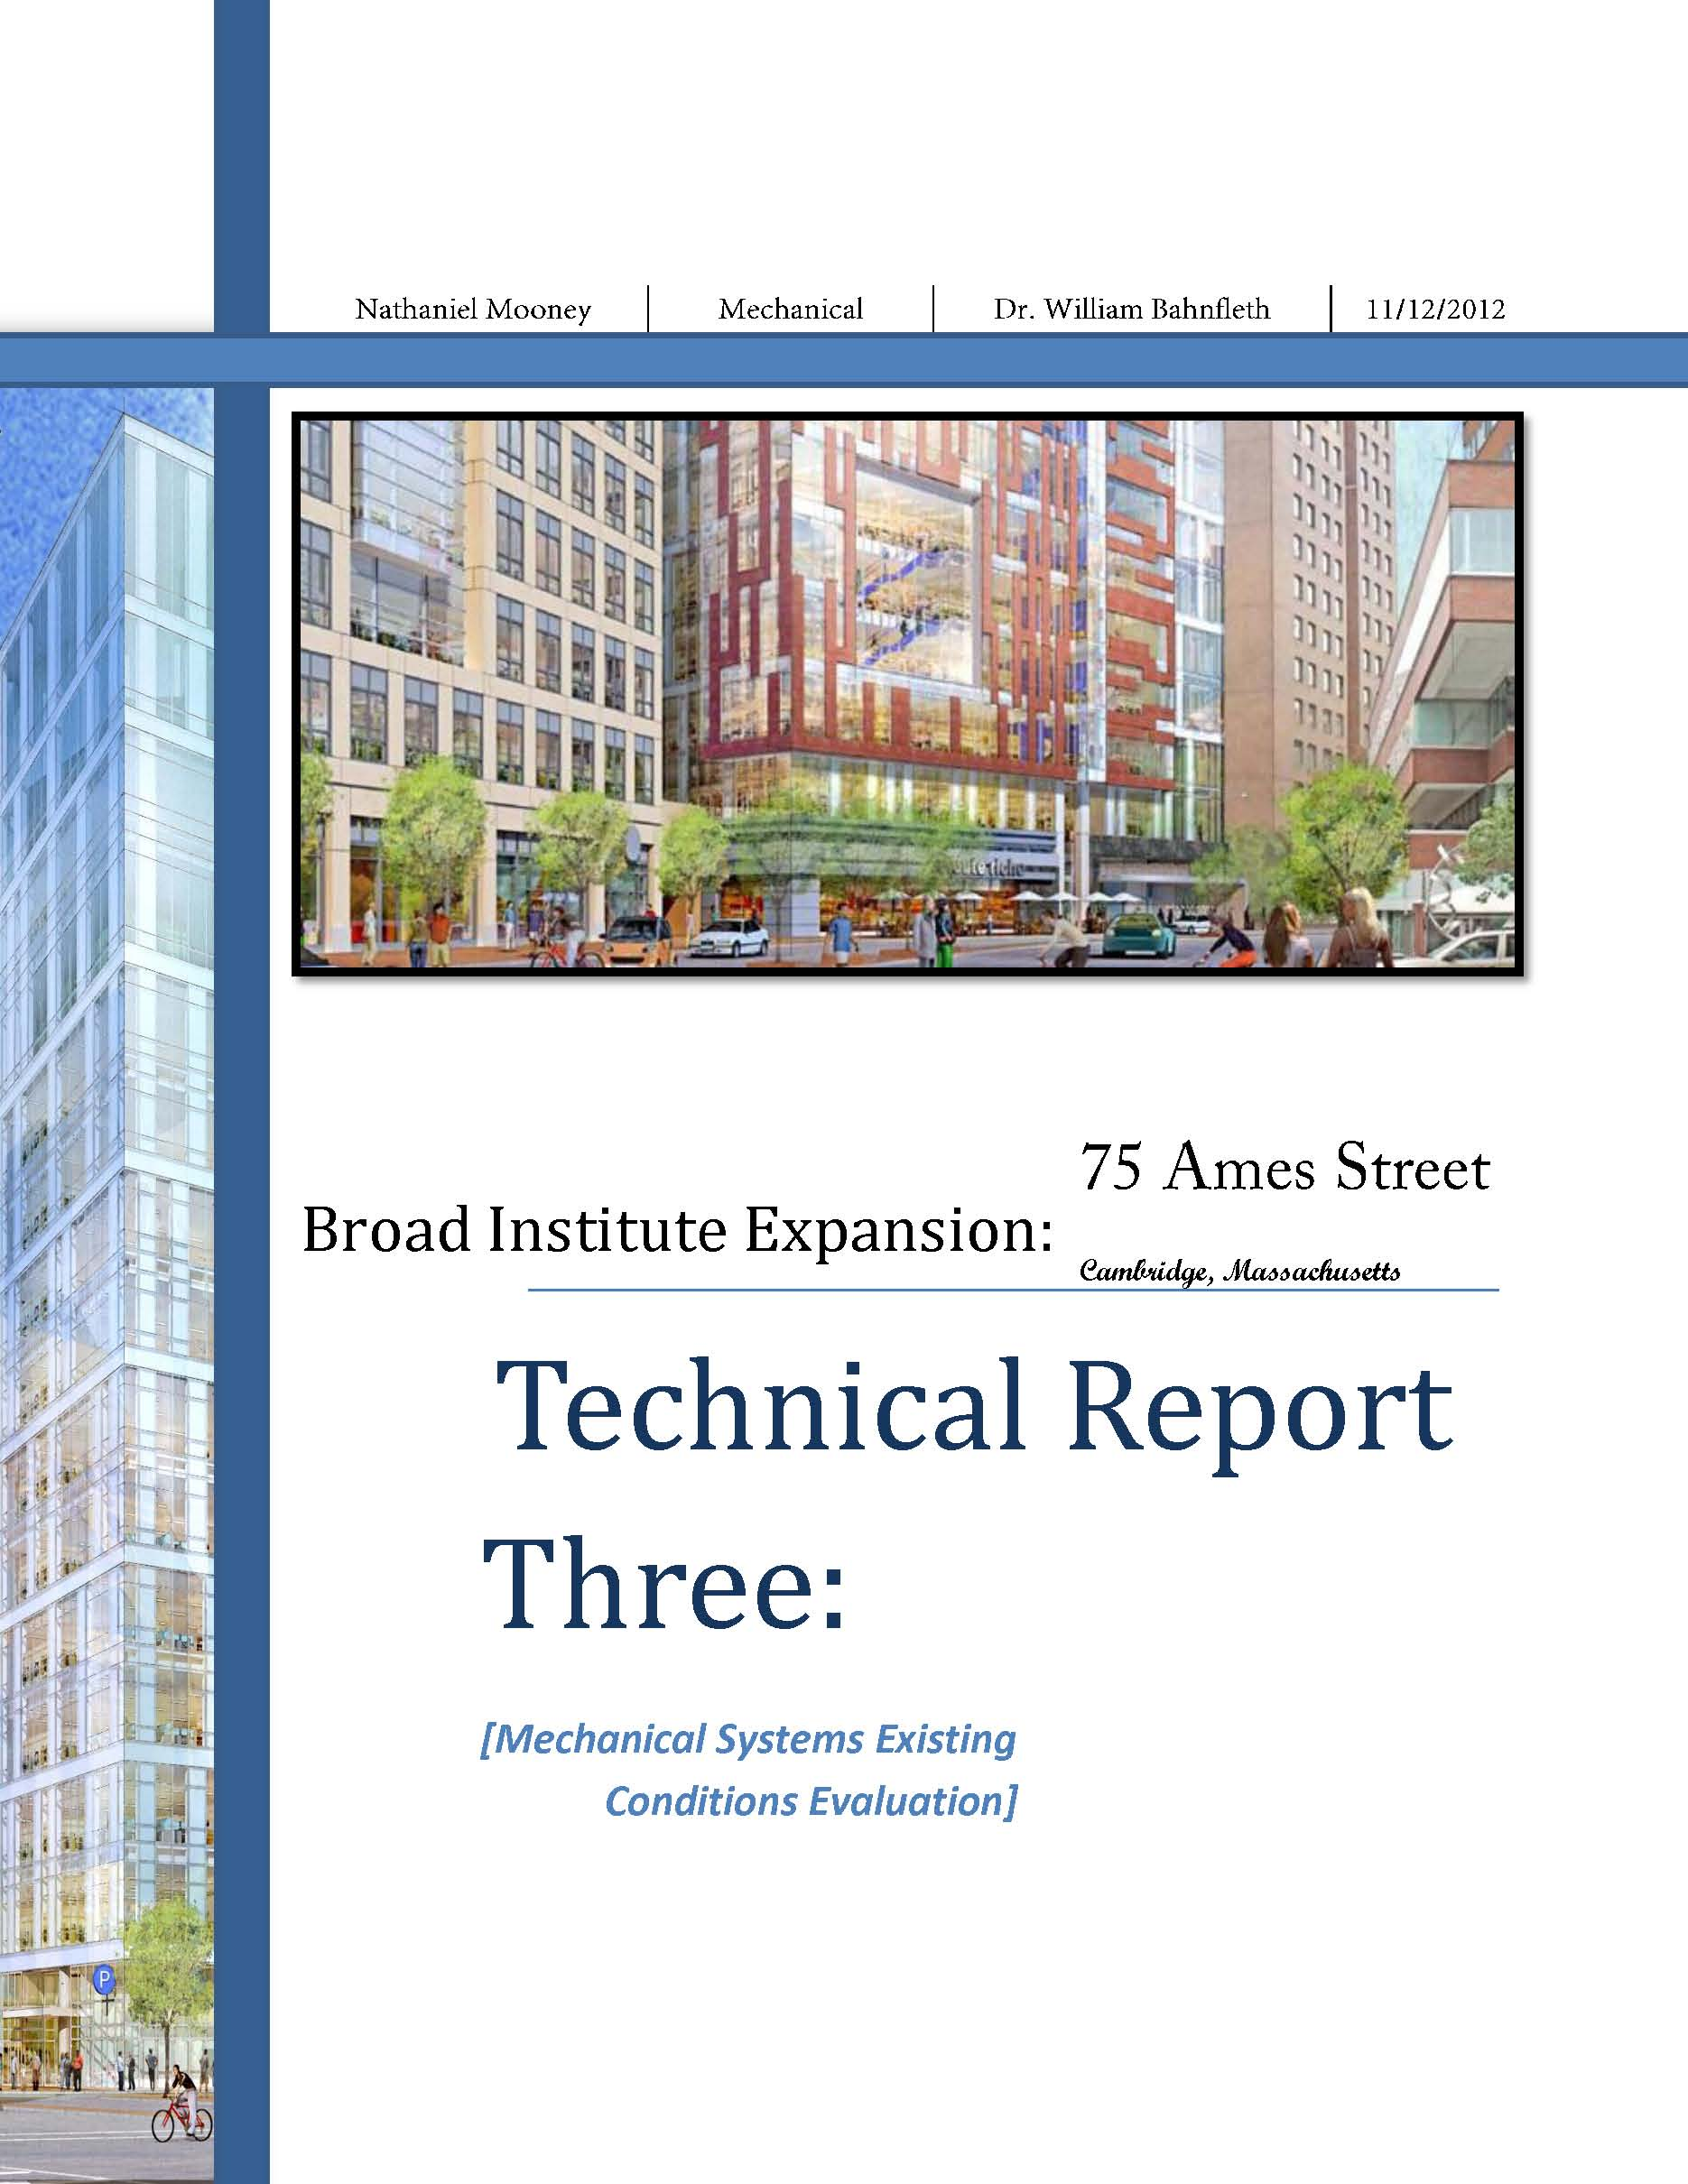 75 Ames Technical Reports